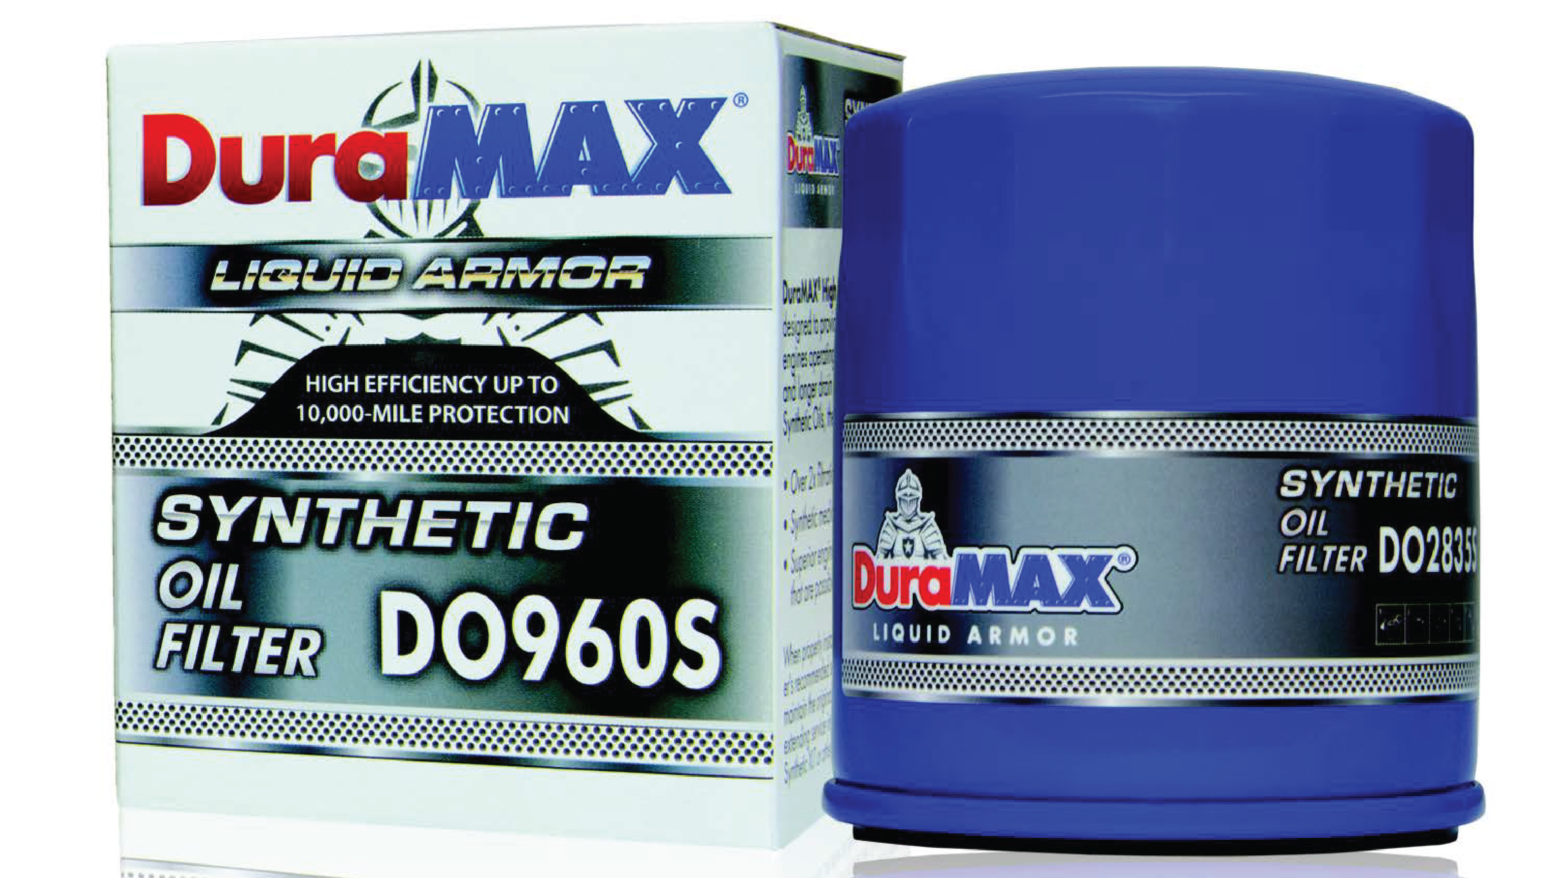 DuraMAX Oil Filter